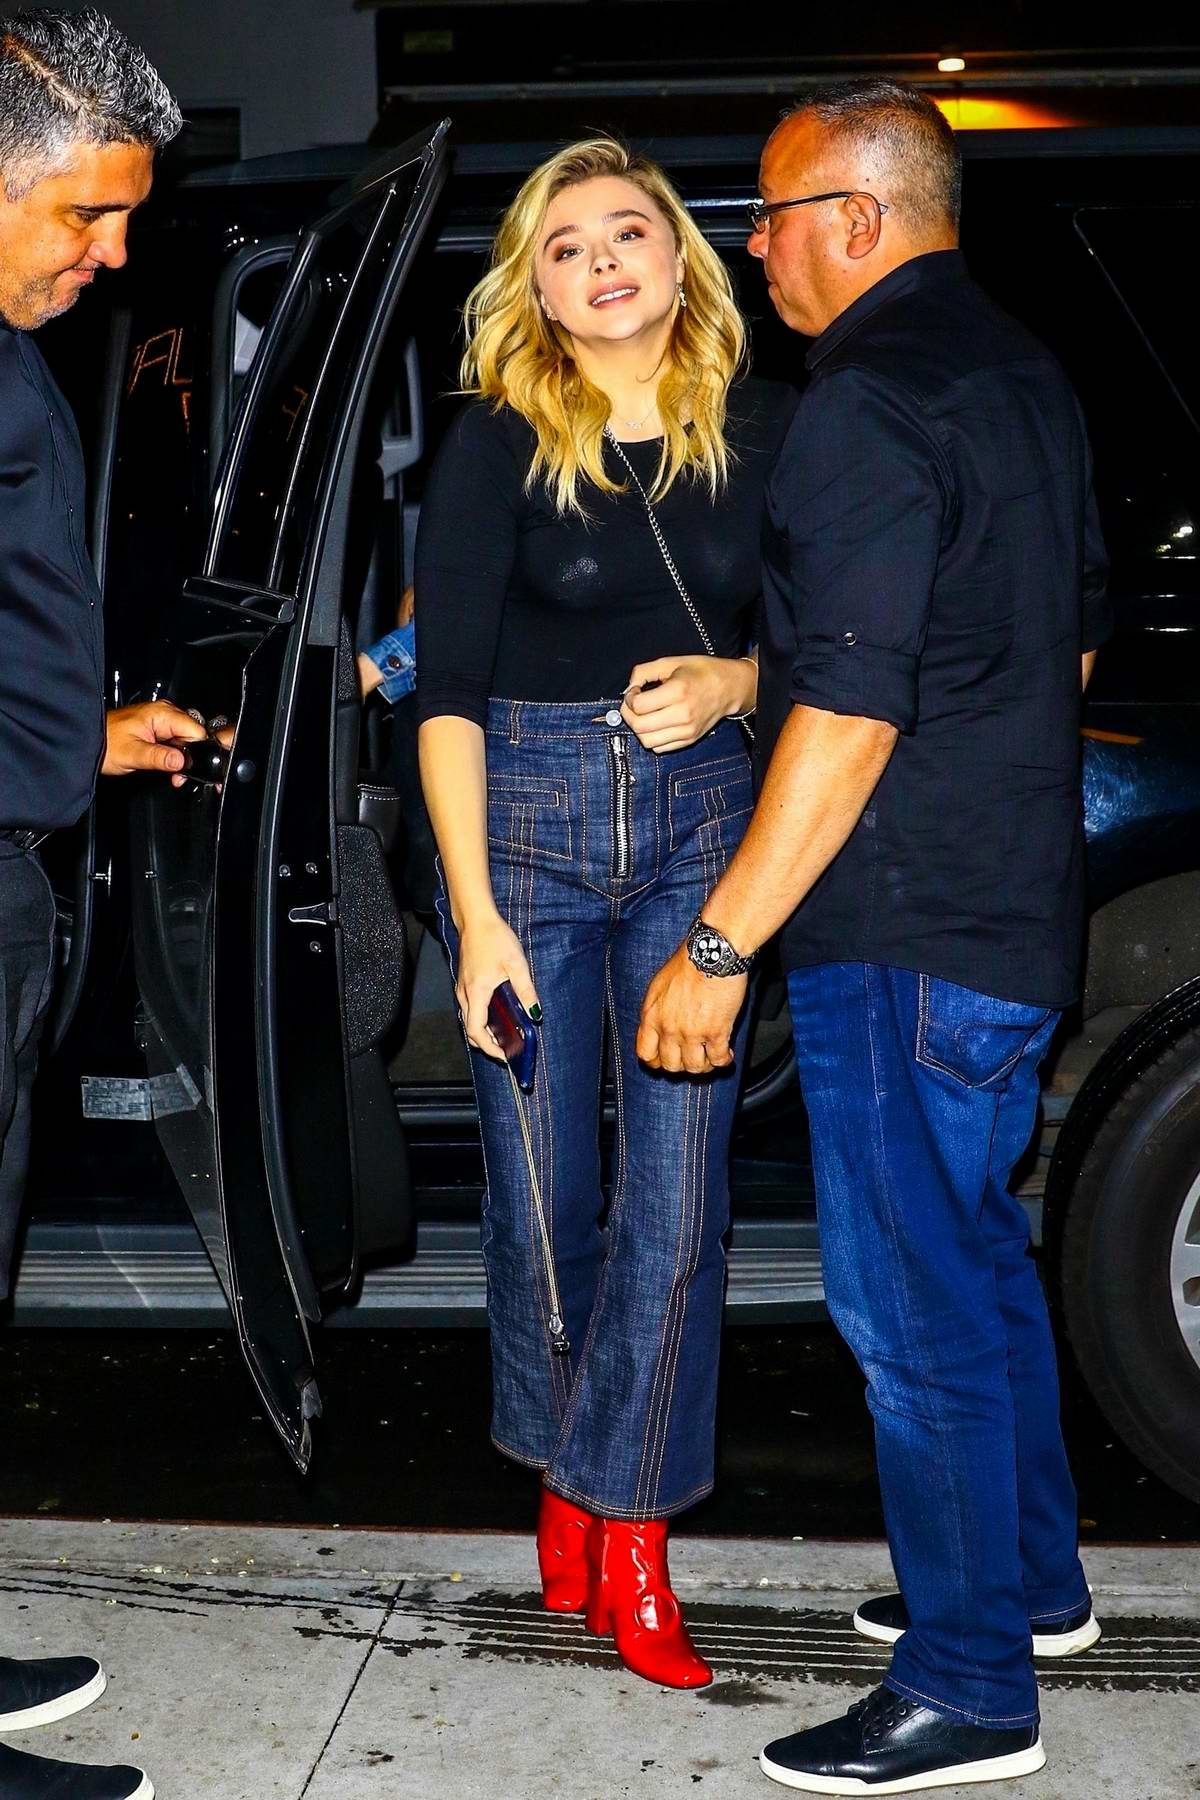 Chloe Grace Moretz spotted in a black top, jeans and red boots as she arrive at at the Quad Cinema in New York City